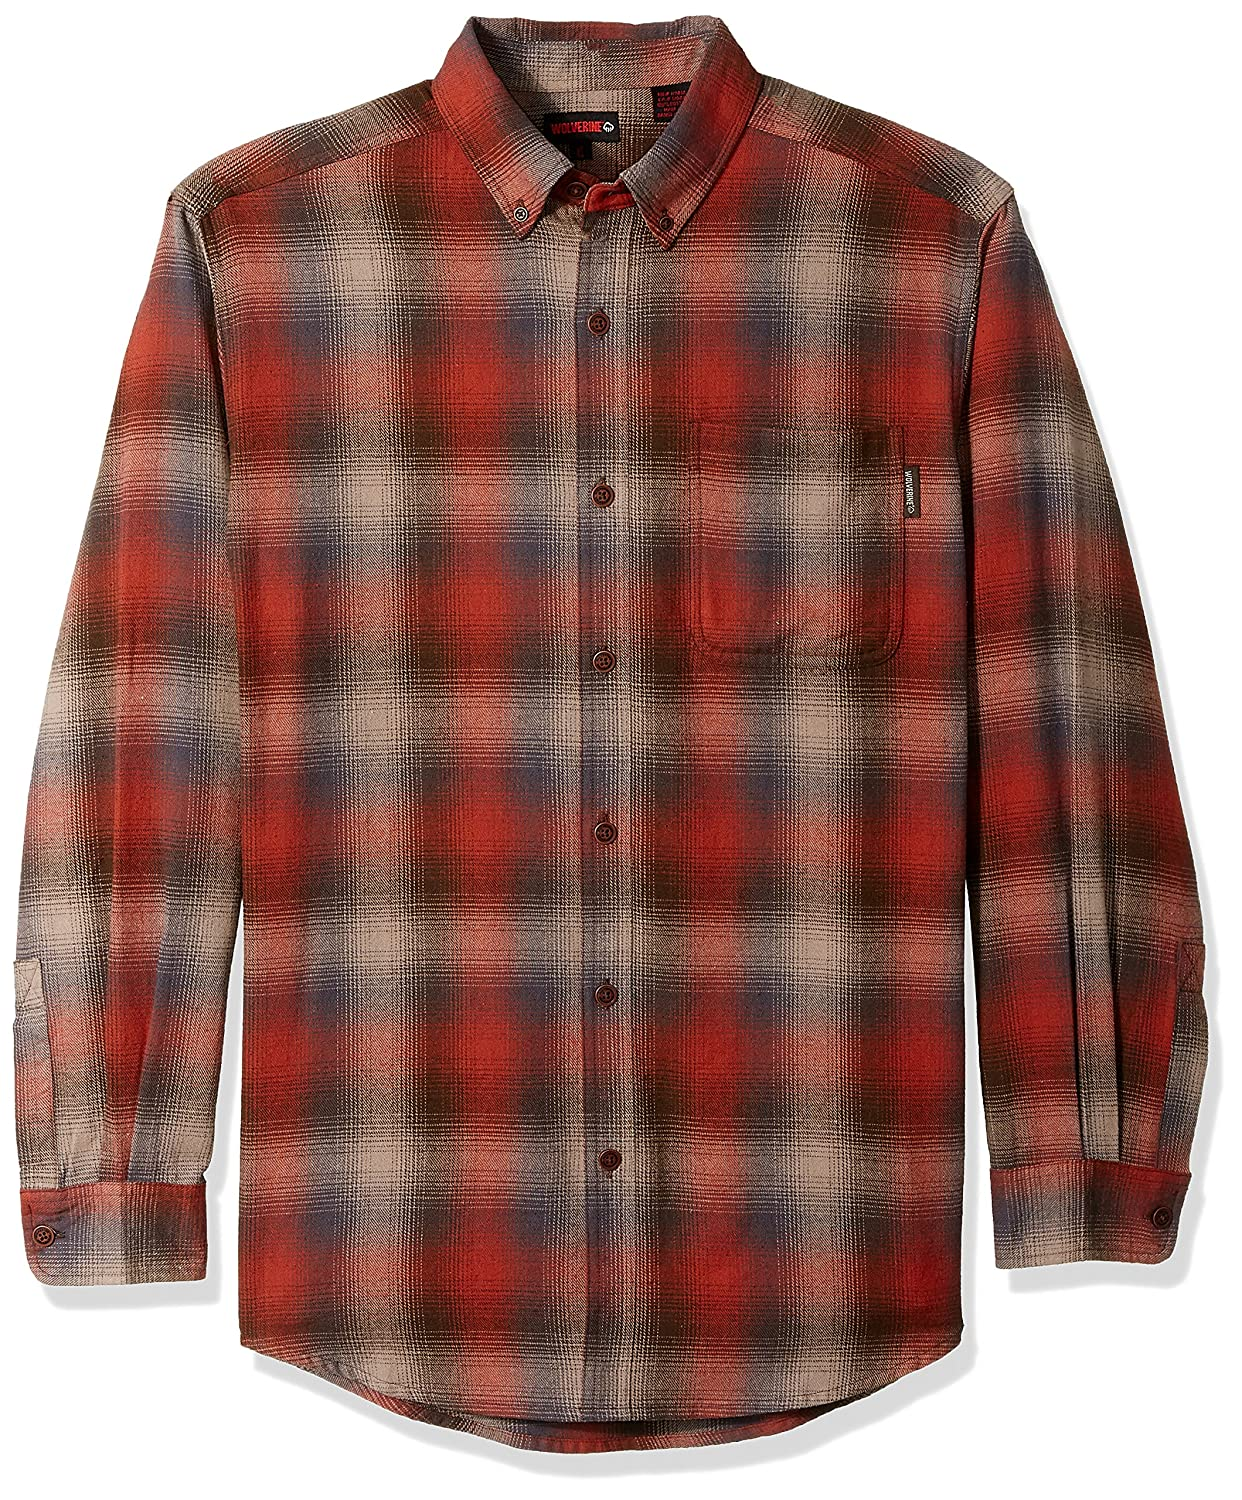 Wolverine SHIRT メンズ B072W65124 XXXX-Large|Cinnamon Plaid Cinnamon Plaid XXXX-Large